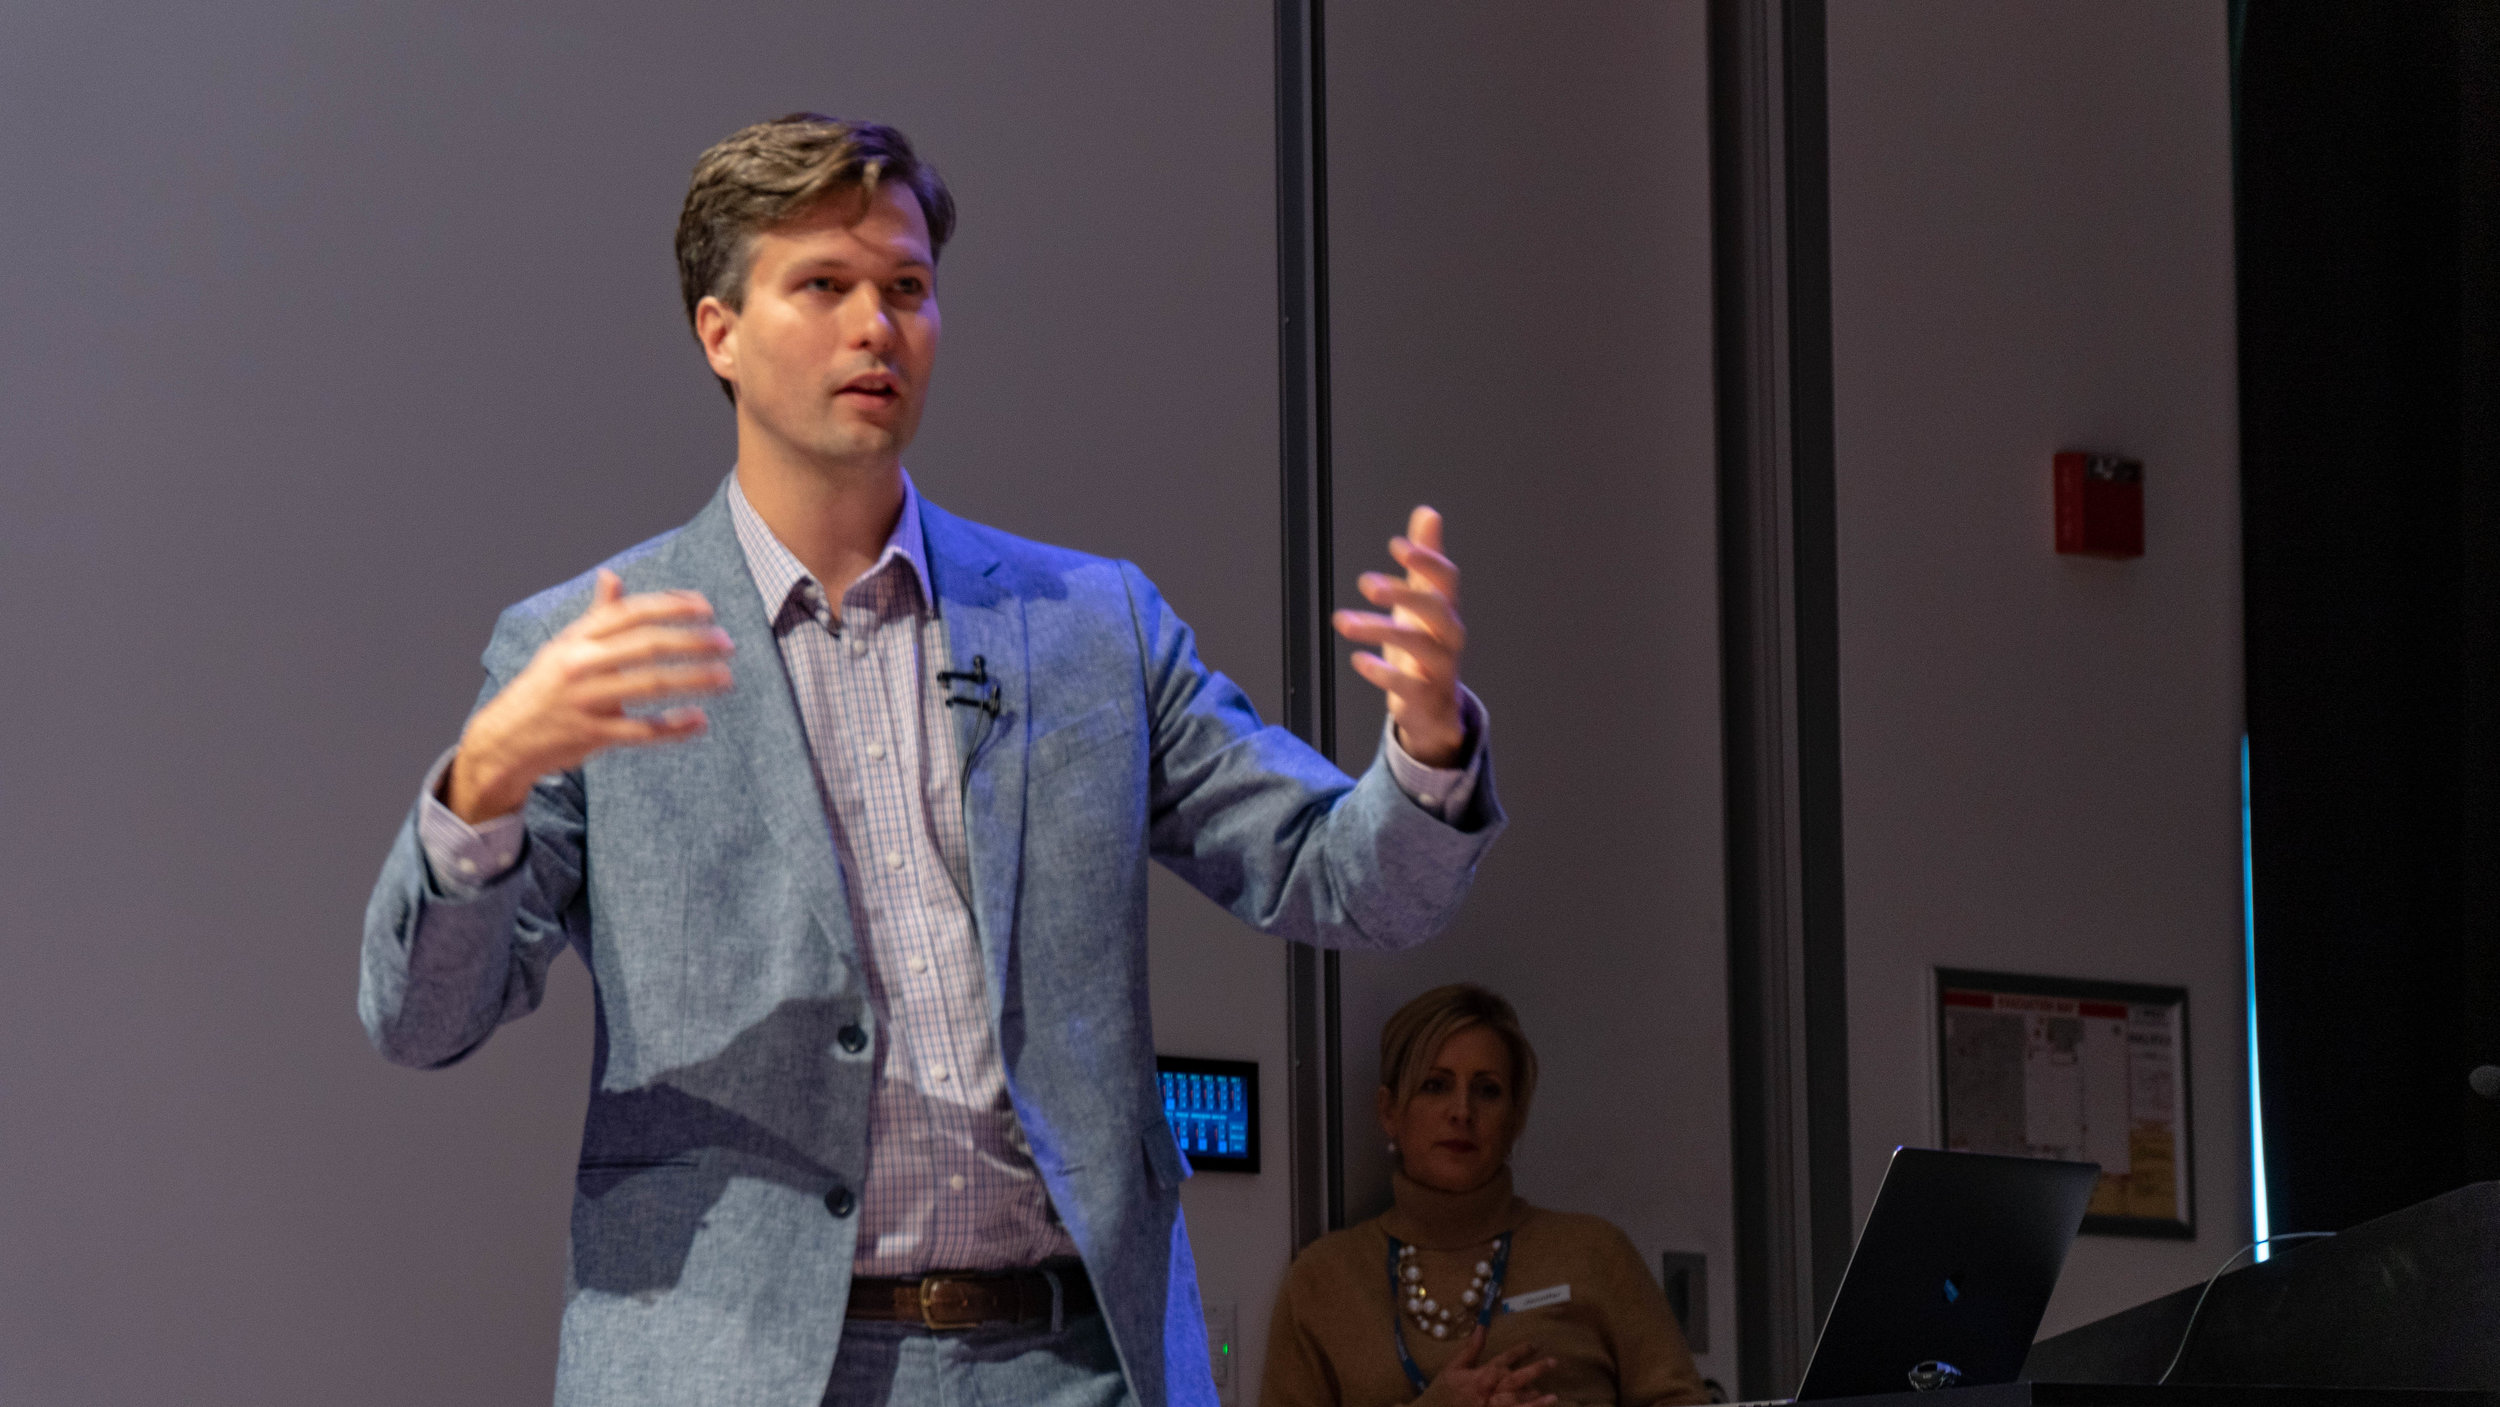 Ethan Kent, New York - 'When you focus on a place, you do everything differently'. For Ethan Kent, the act of placemaking has impacts far beyond our public spaces; in fact, it poses radical new models for governance, resilience, equity, and design.